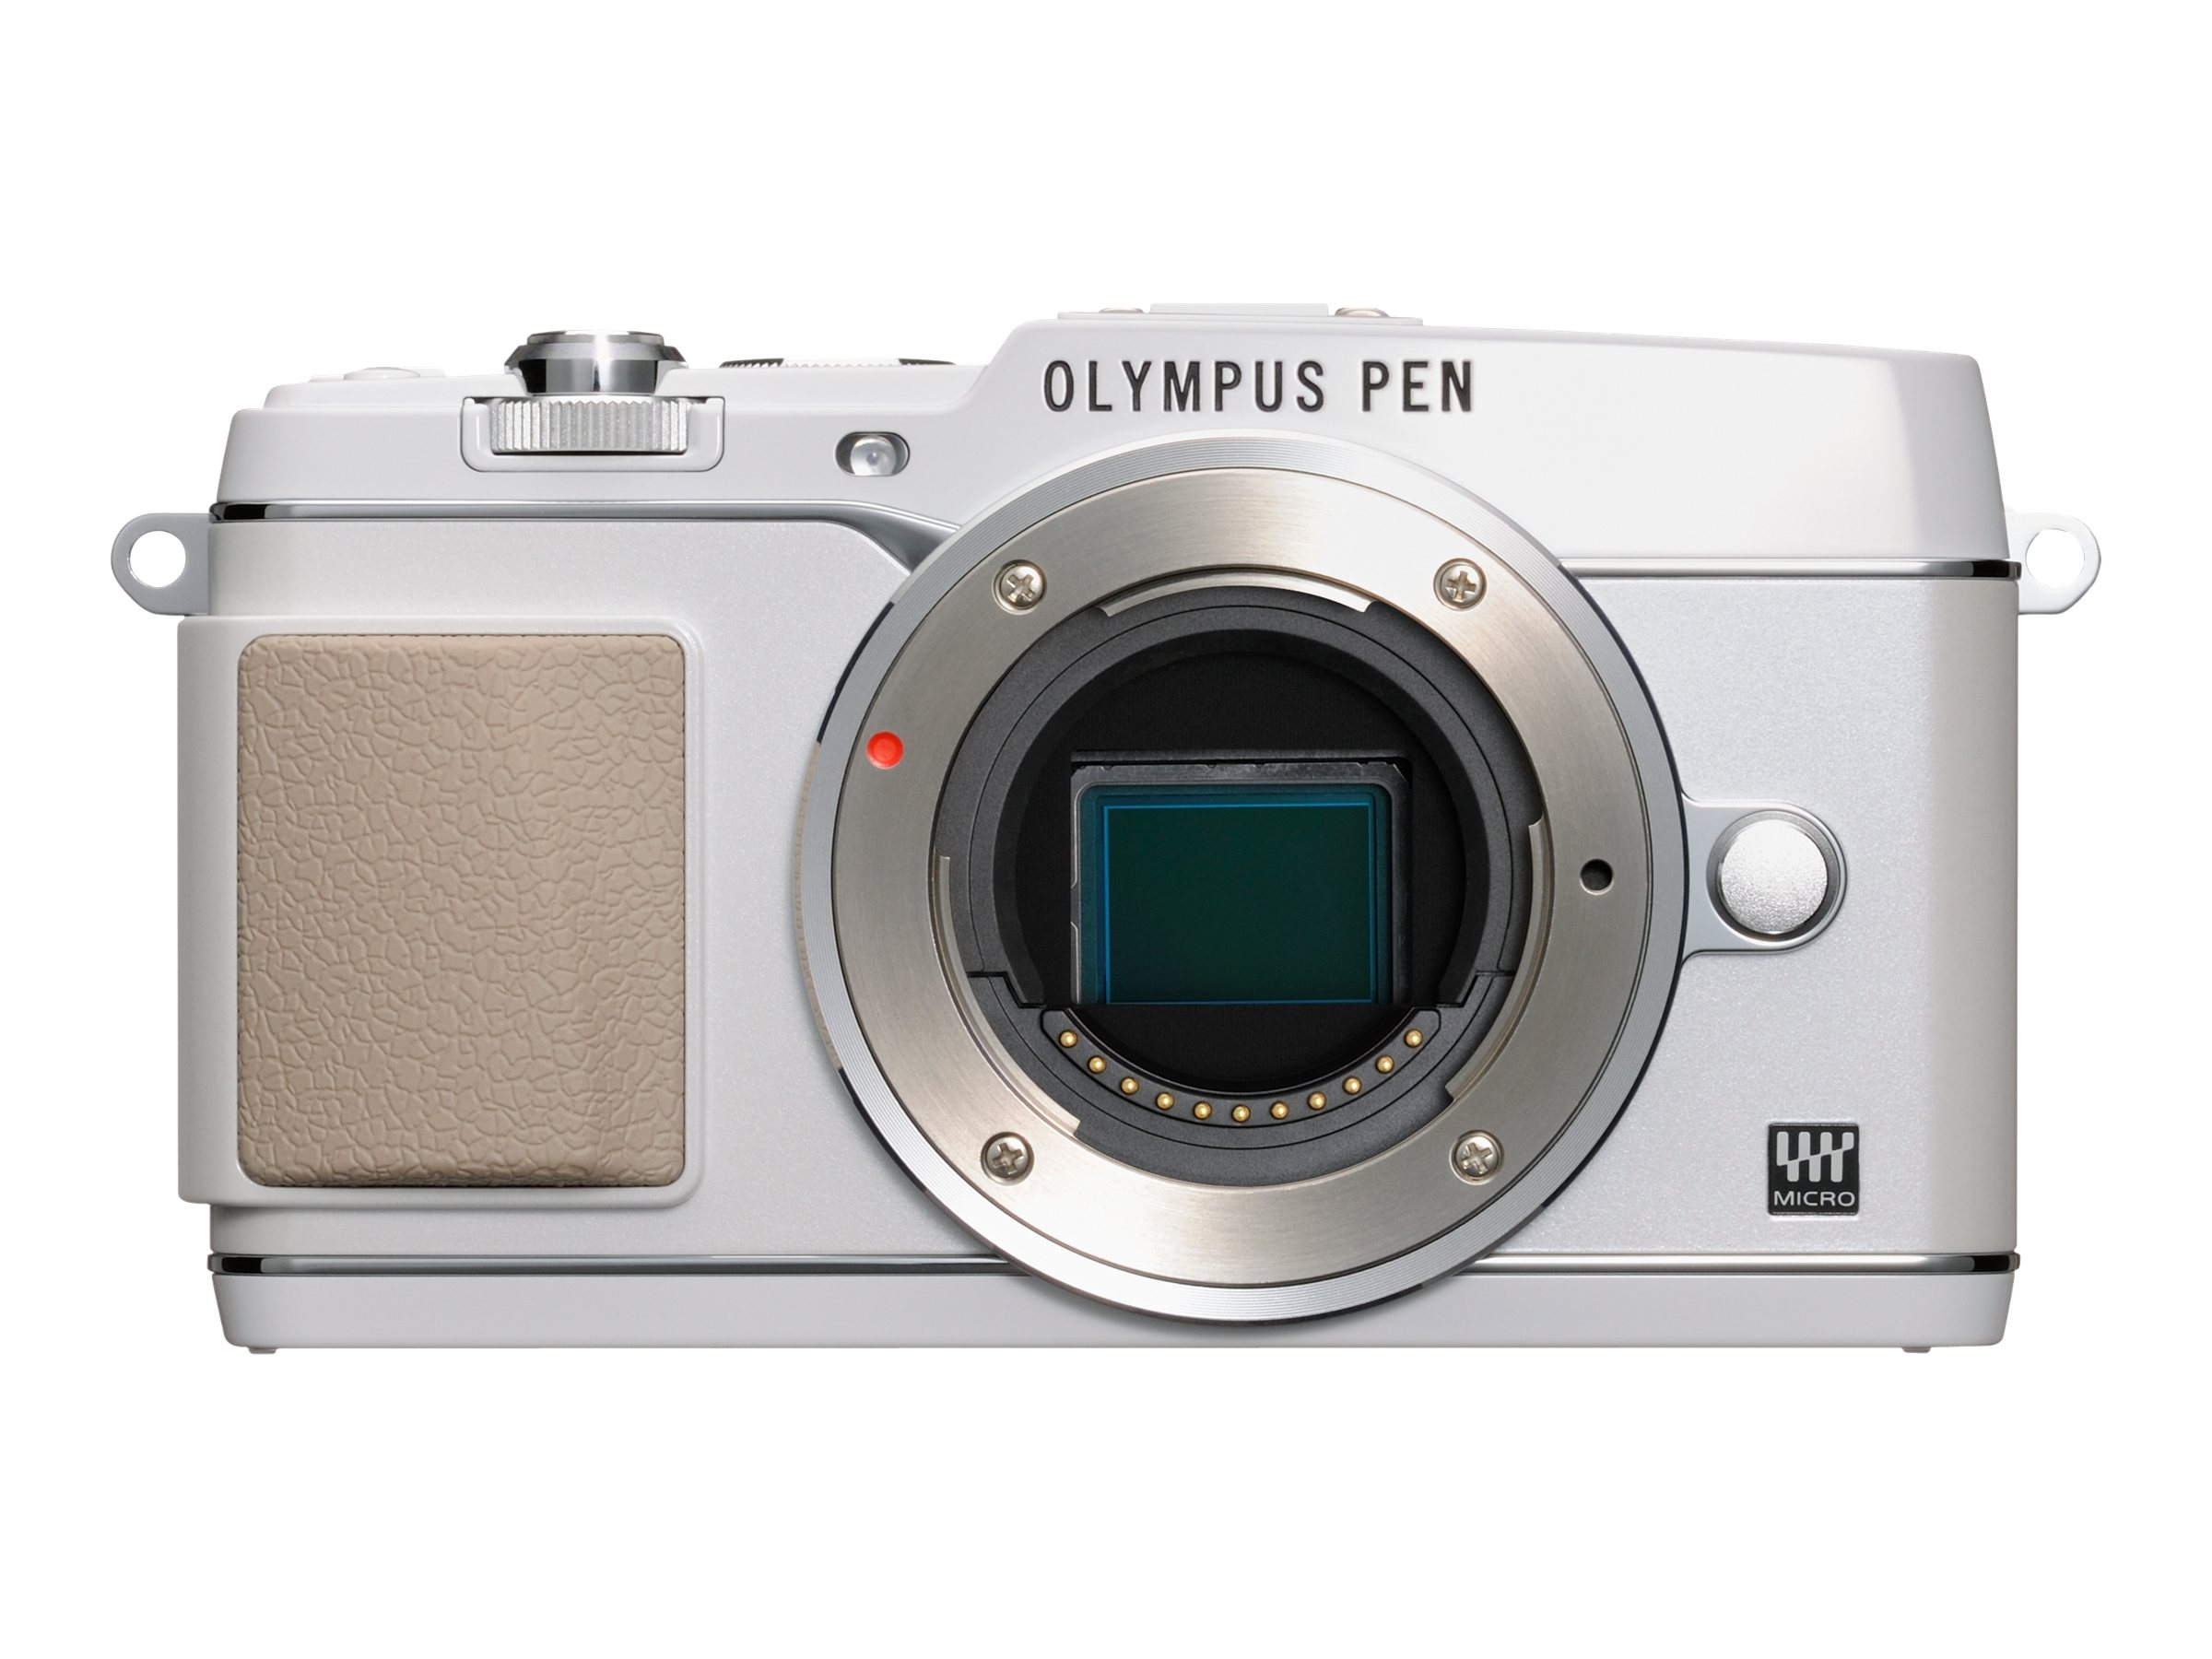 Olympus E-P5 PEN Mirrorless Digital Camera, White, V204050WU000, 15751907, Cameras - Digital - SLR